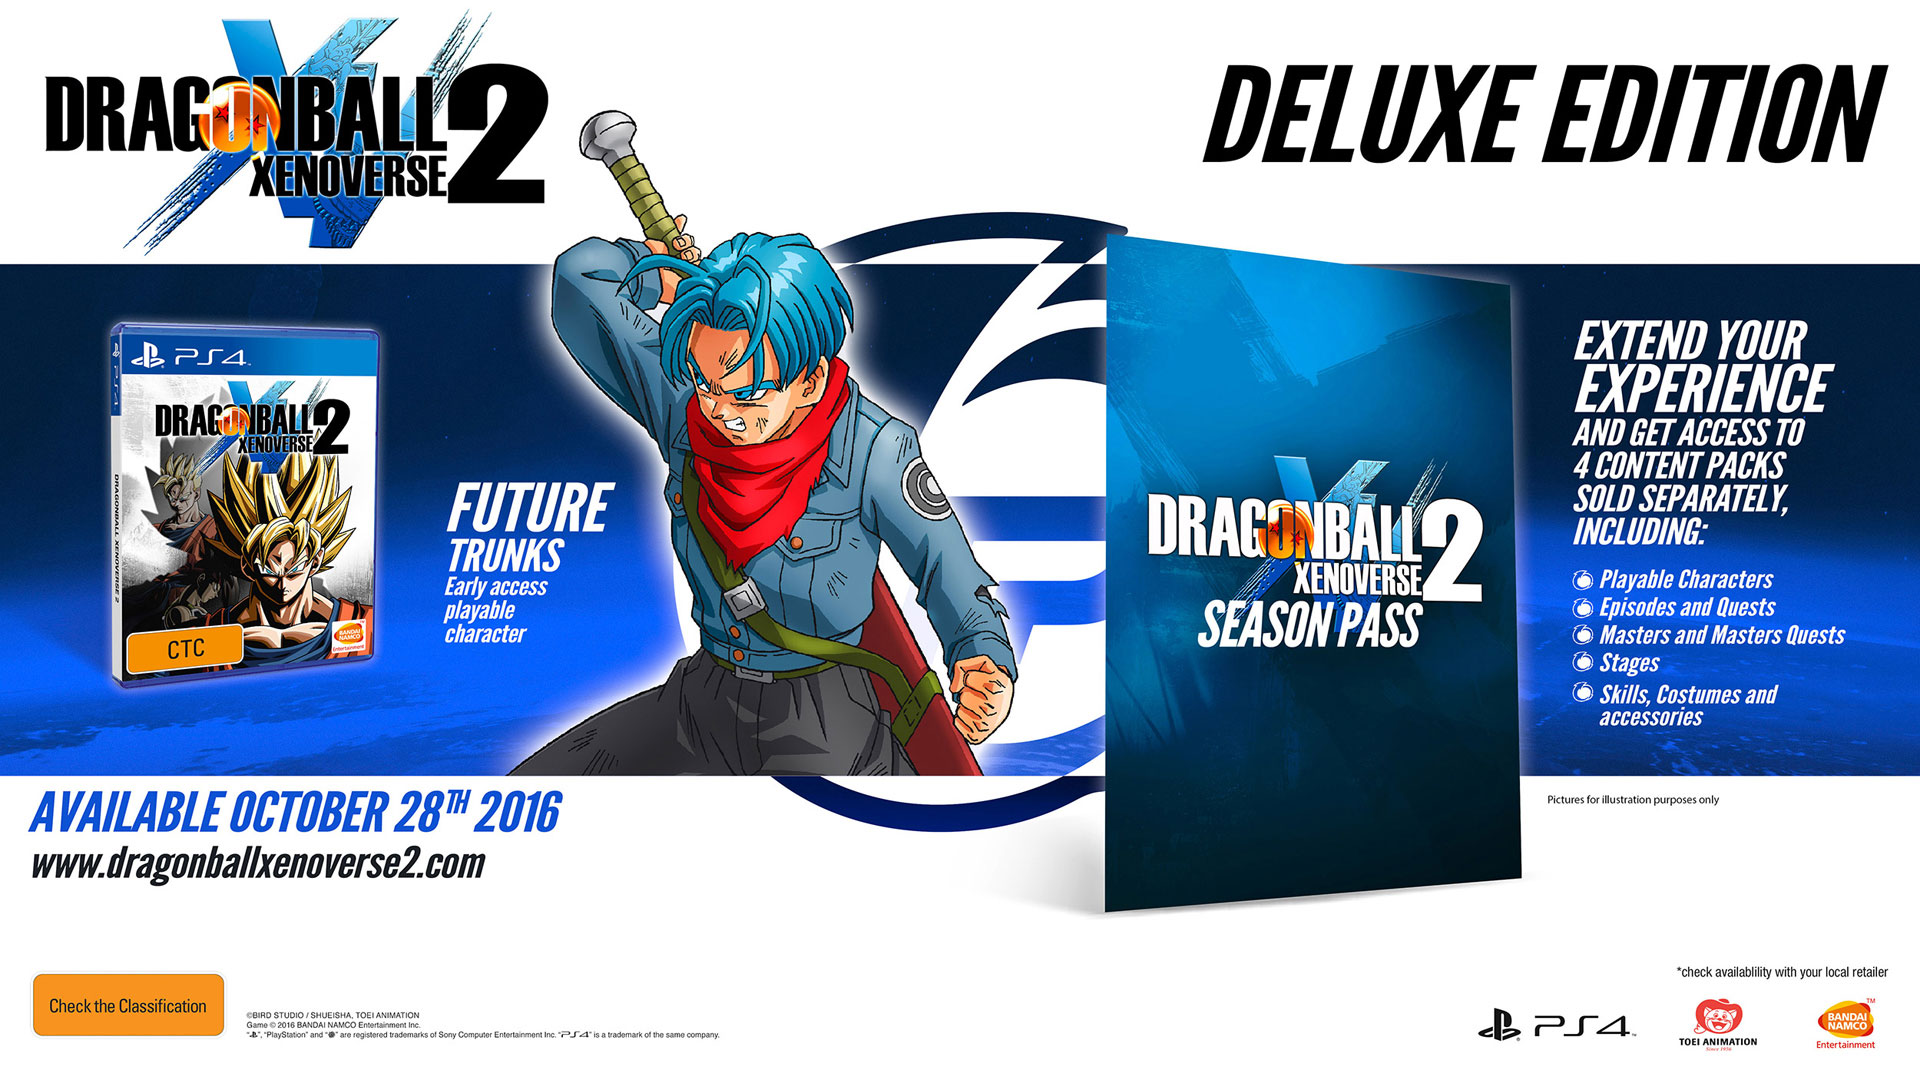 dragon_ball_xenoverse_2_deluxe_edition